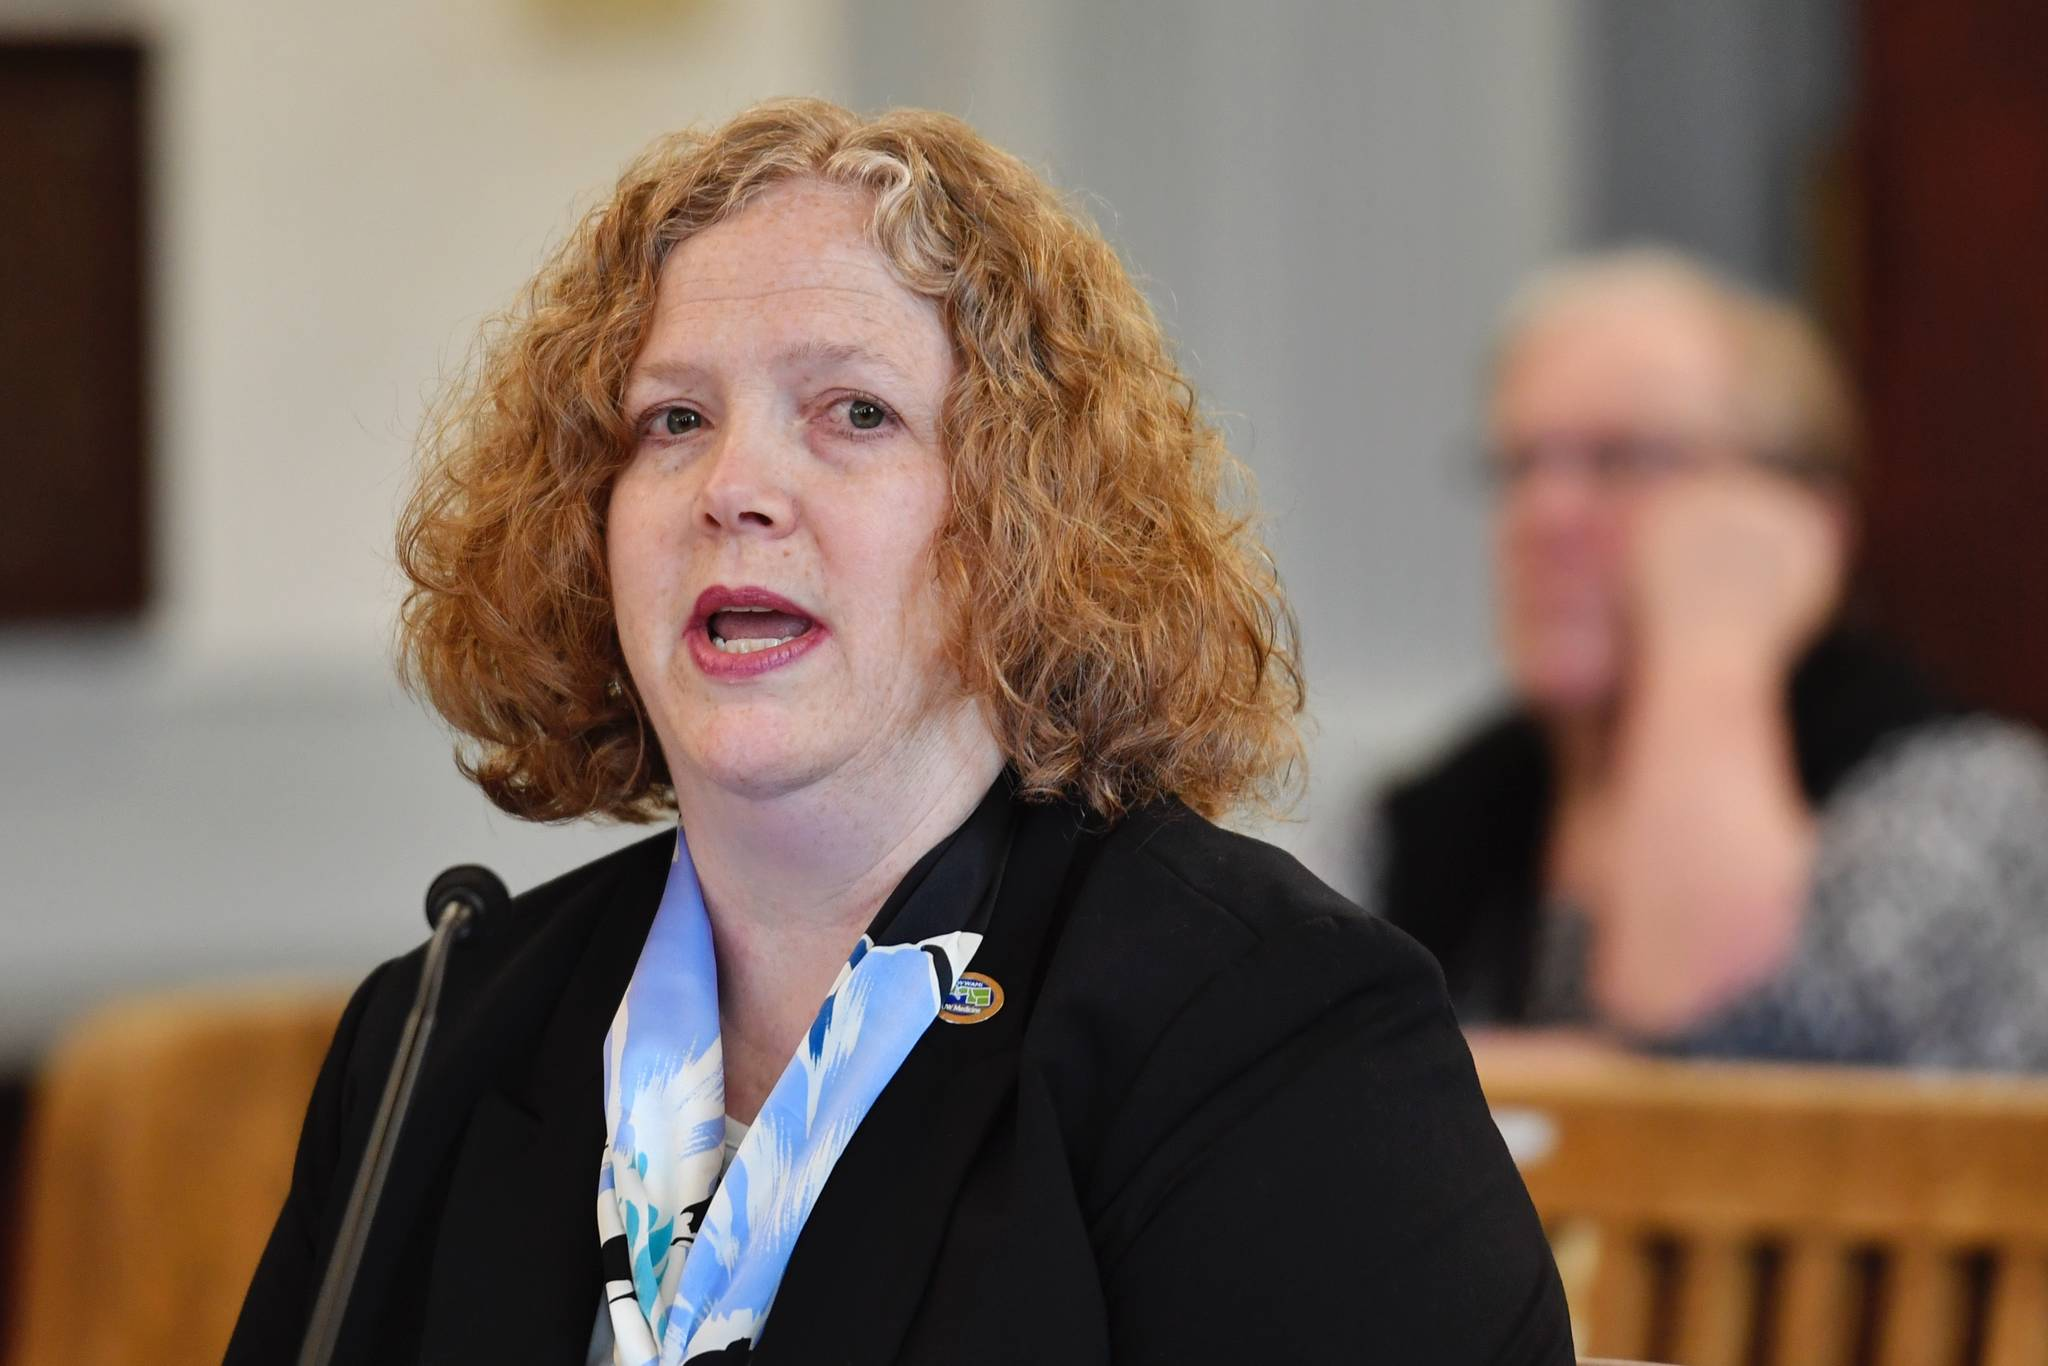 Dr. Suzanne Allen, from Boise, Idaho, gives an overview of the WWAMI School of Medical Education program to the Senate Finance Committee at the Capitol on Monday, March 25, 2019. (Michael Penn | Juneau Empire)